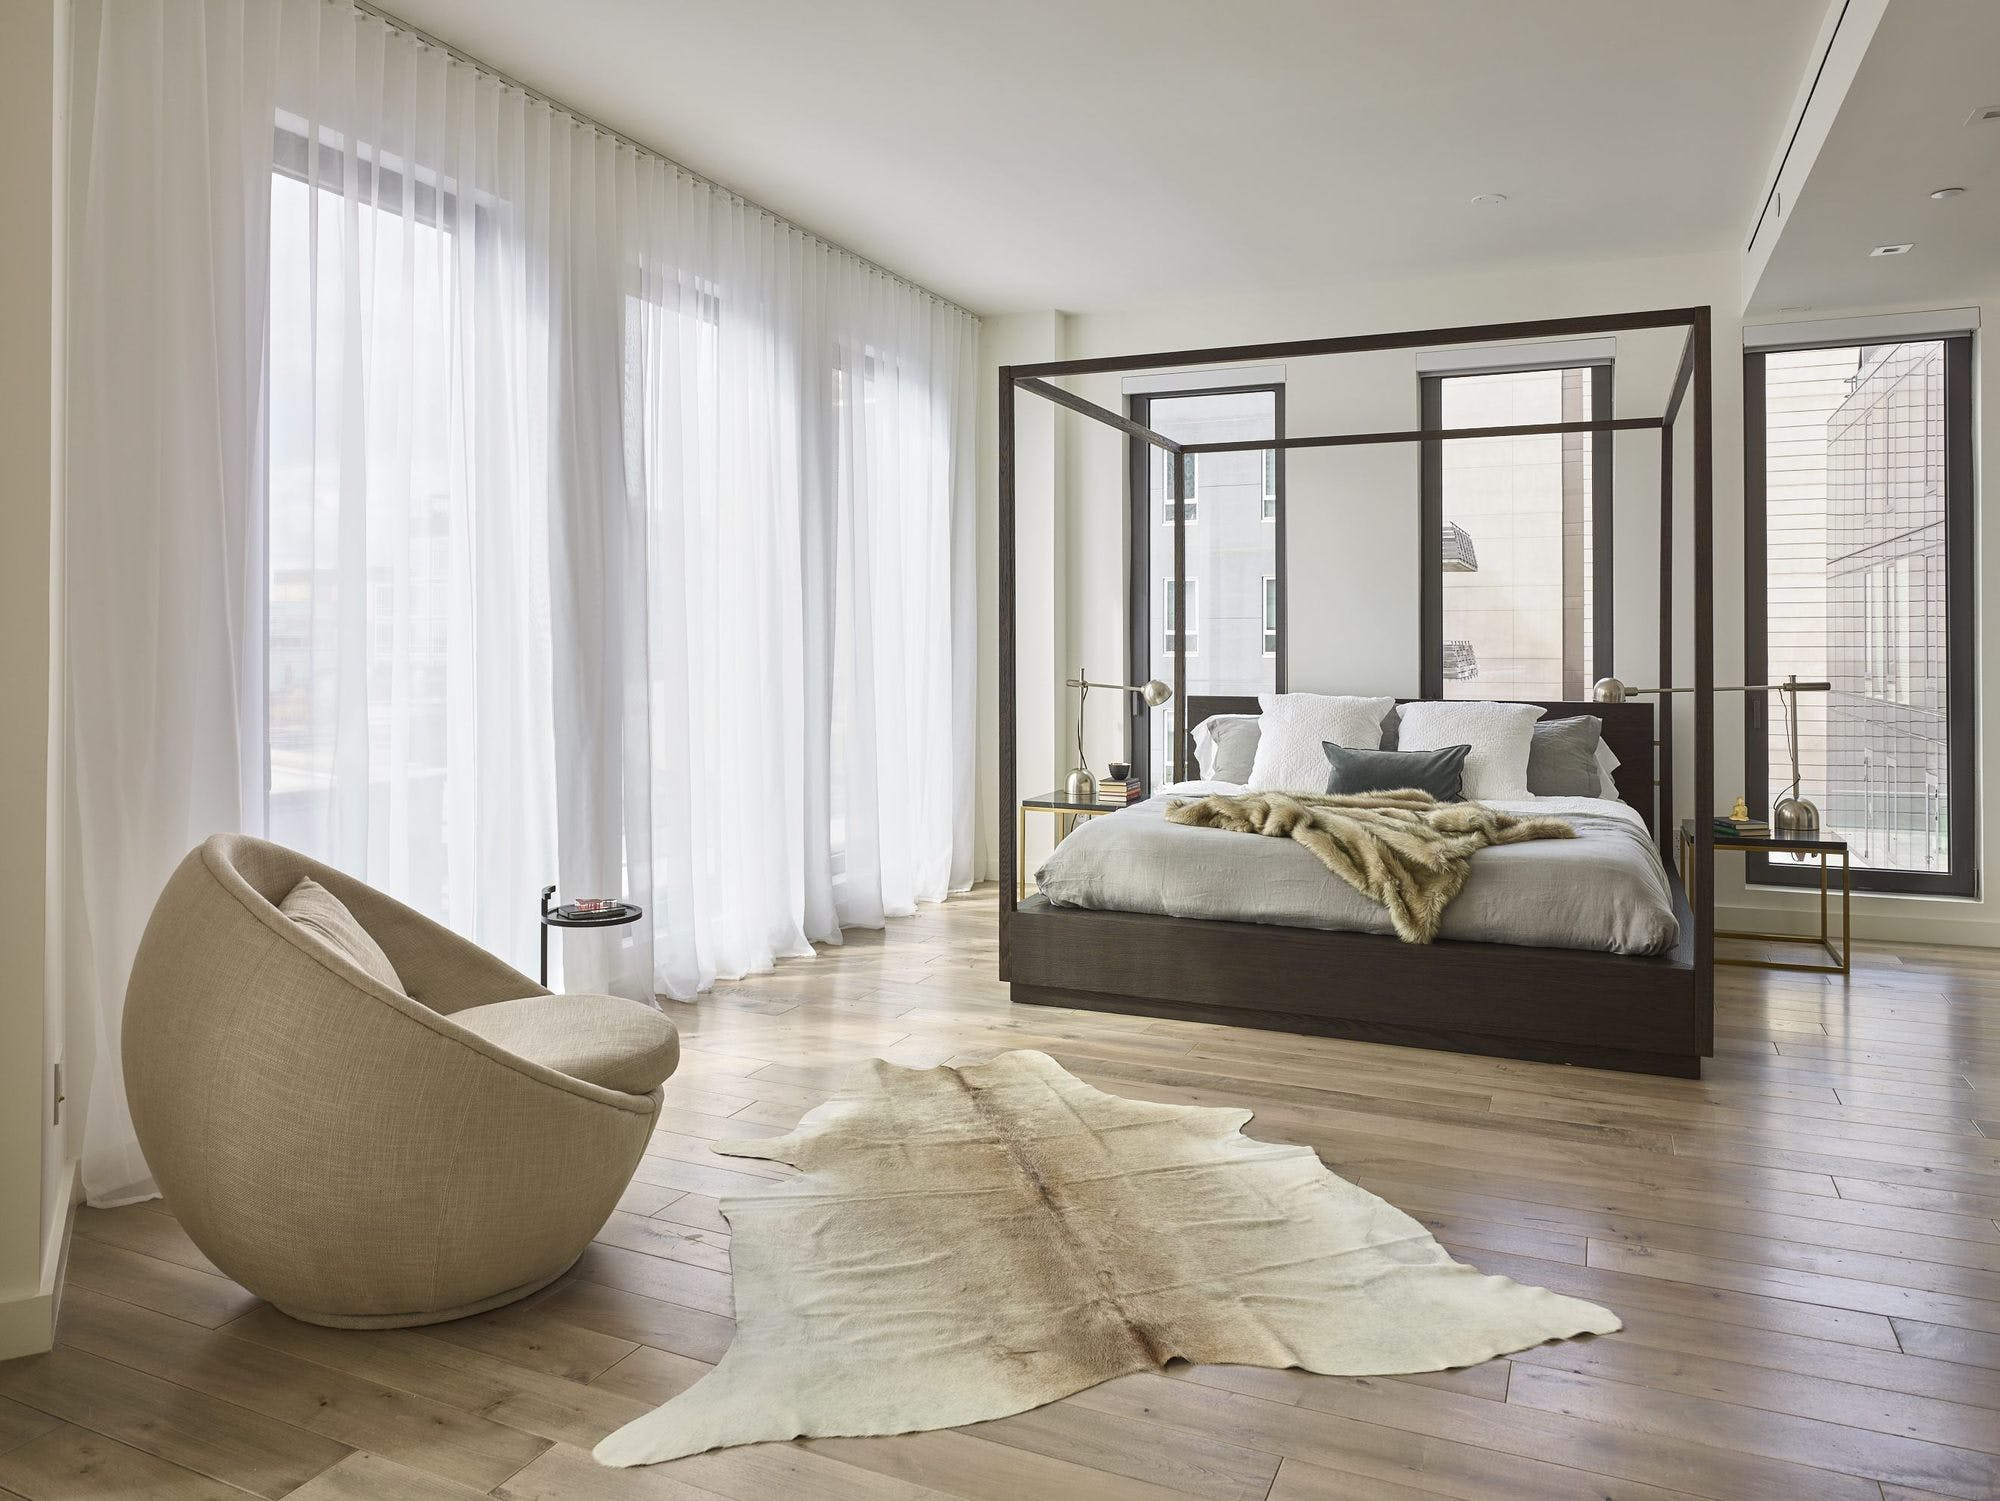 Interior designer architect renwick street apartments located in nyc by oda architecture image frank oudeman